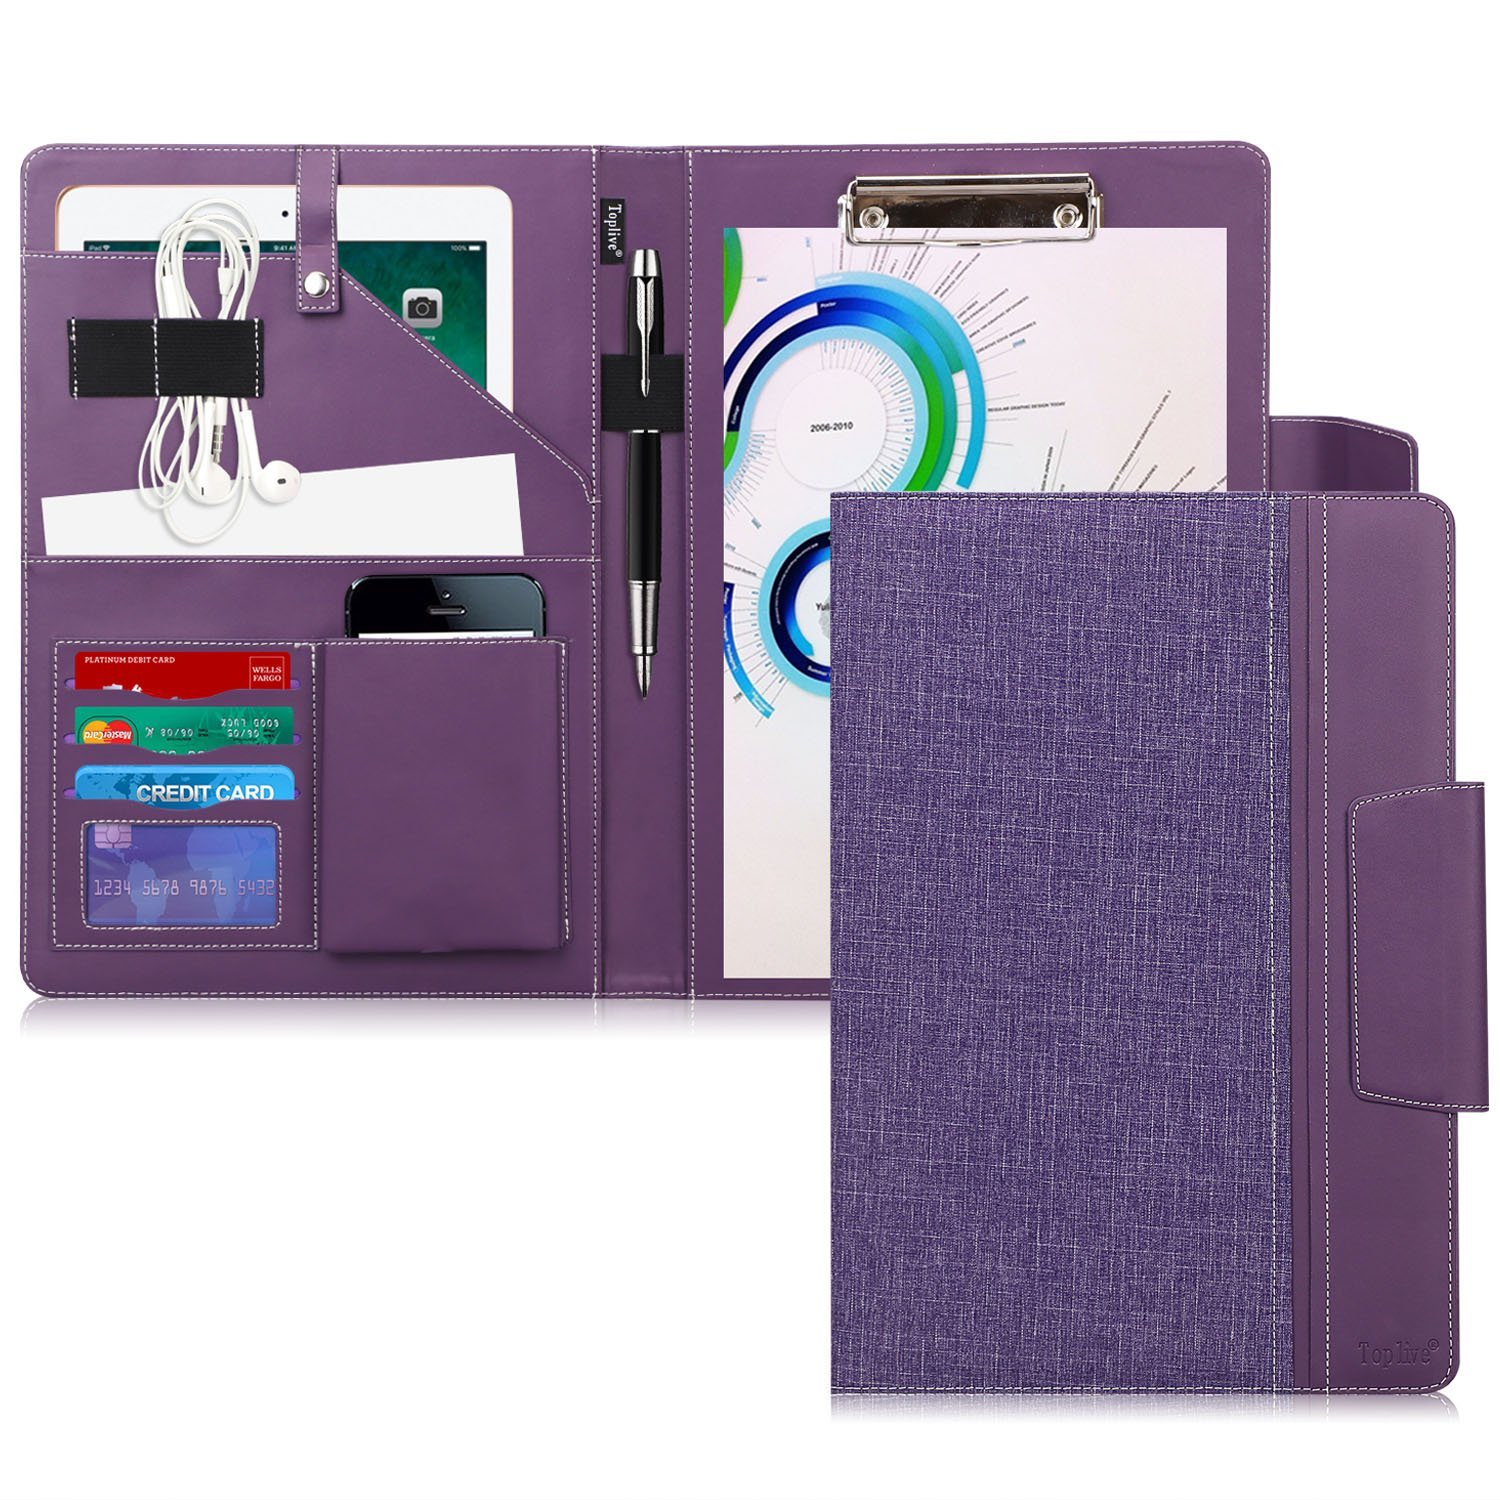 Toplive Portfolio Case Padfolio, Executive Business Document Organizer with Letter Size Clipboard, Business Card Holder, Tablet Sleeve(Up to 10.5 Tablet), for Business School Office Conference, Purple